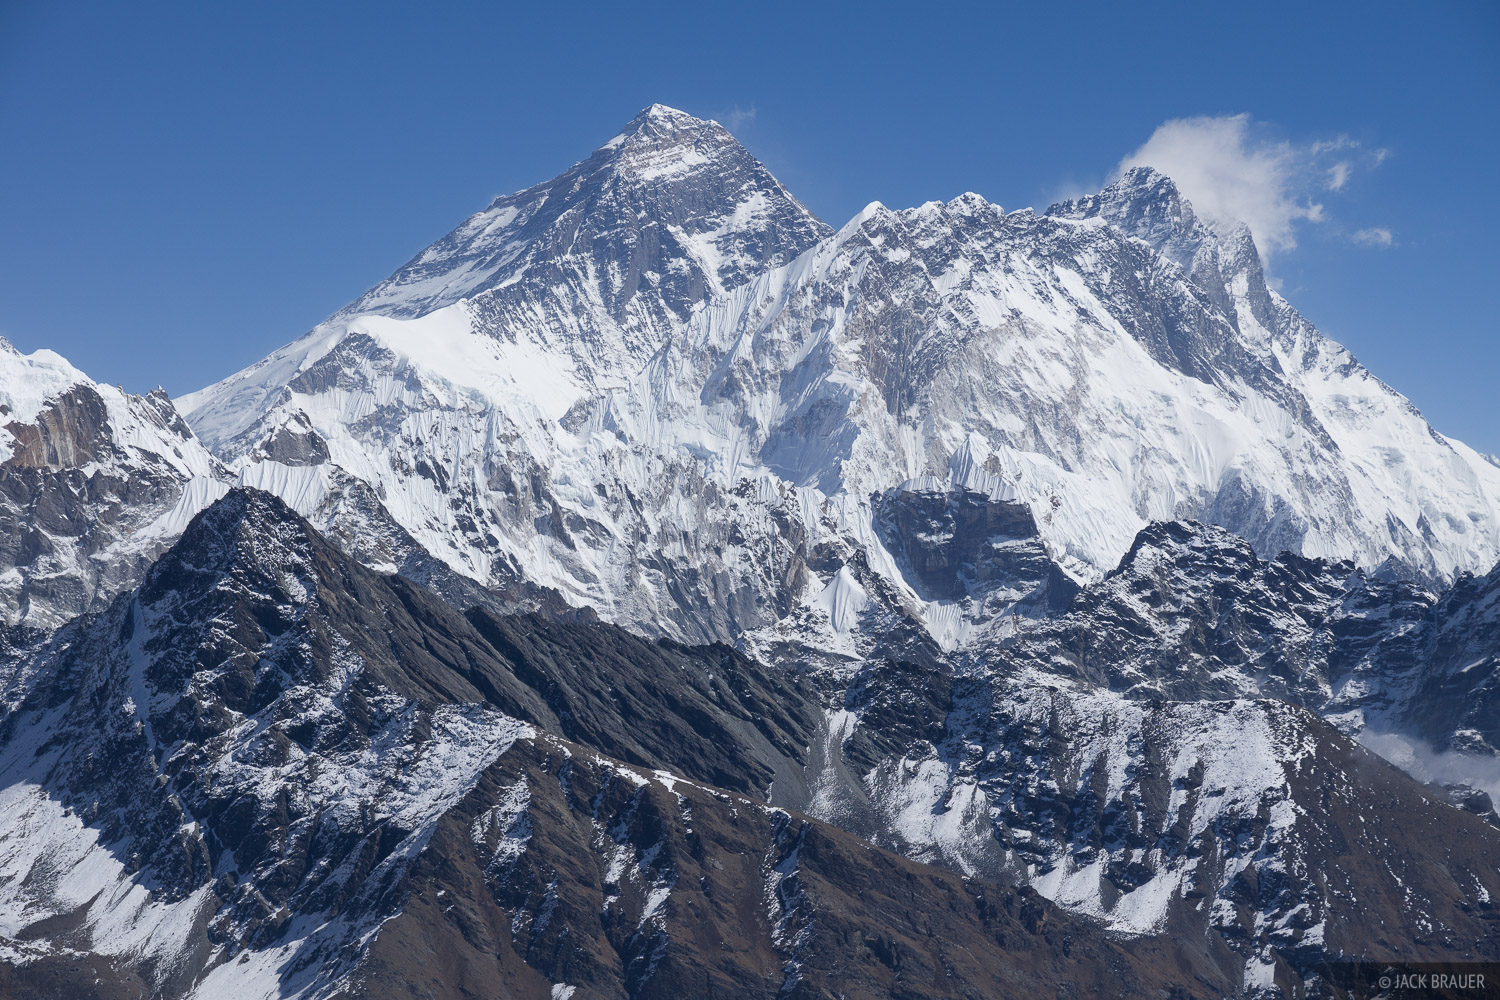 Himalaya,Khumbu,Mt. Everest,Nepal,Renjo La, photo